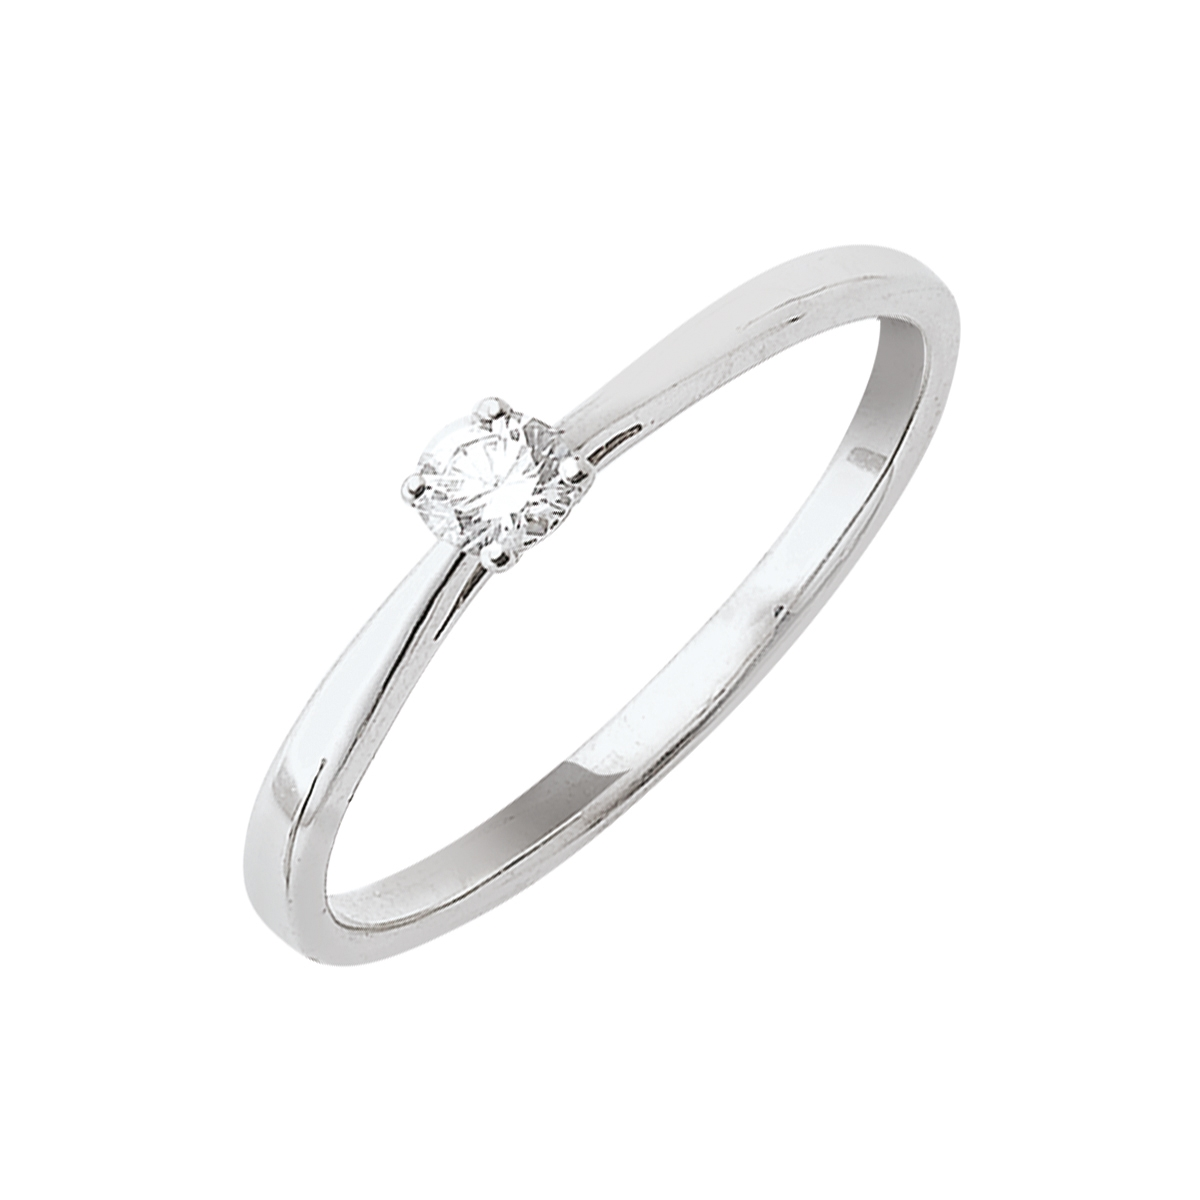 Solitaire or blanc - Diamant synthétique 0,15 carat